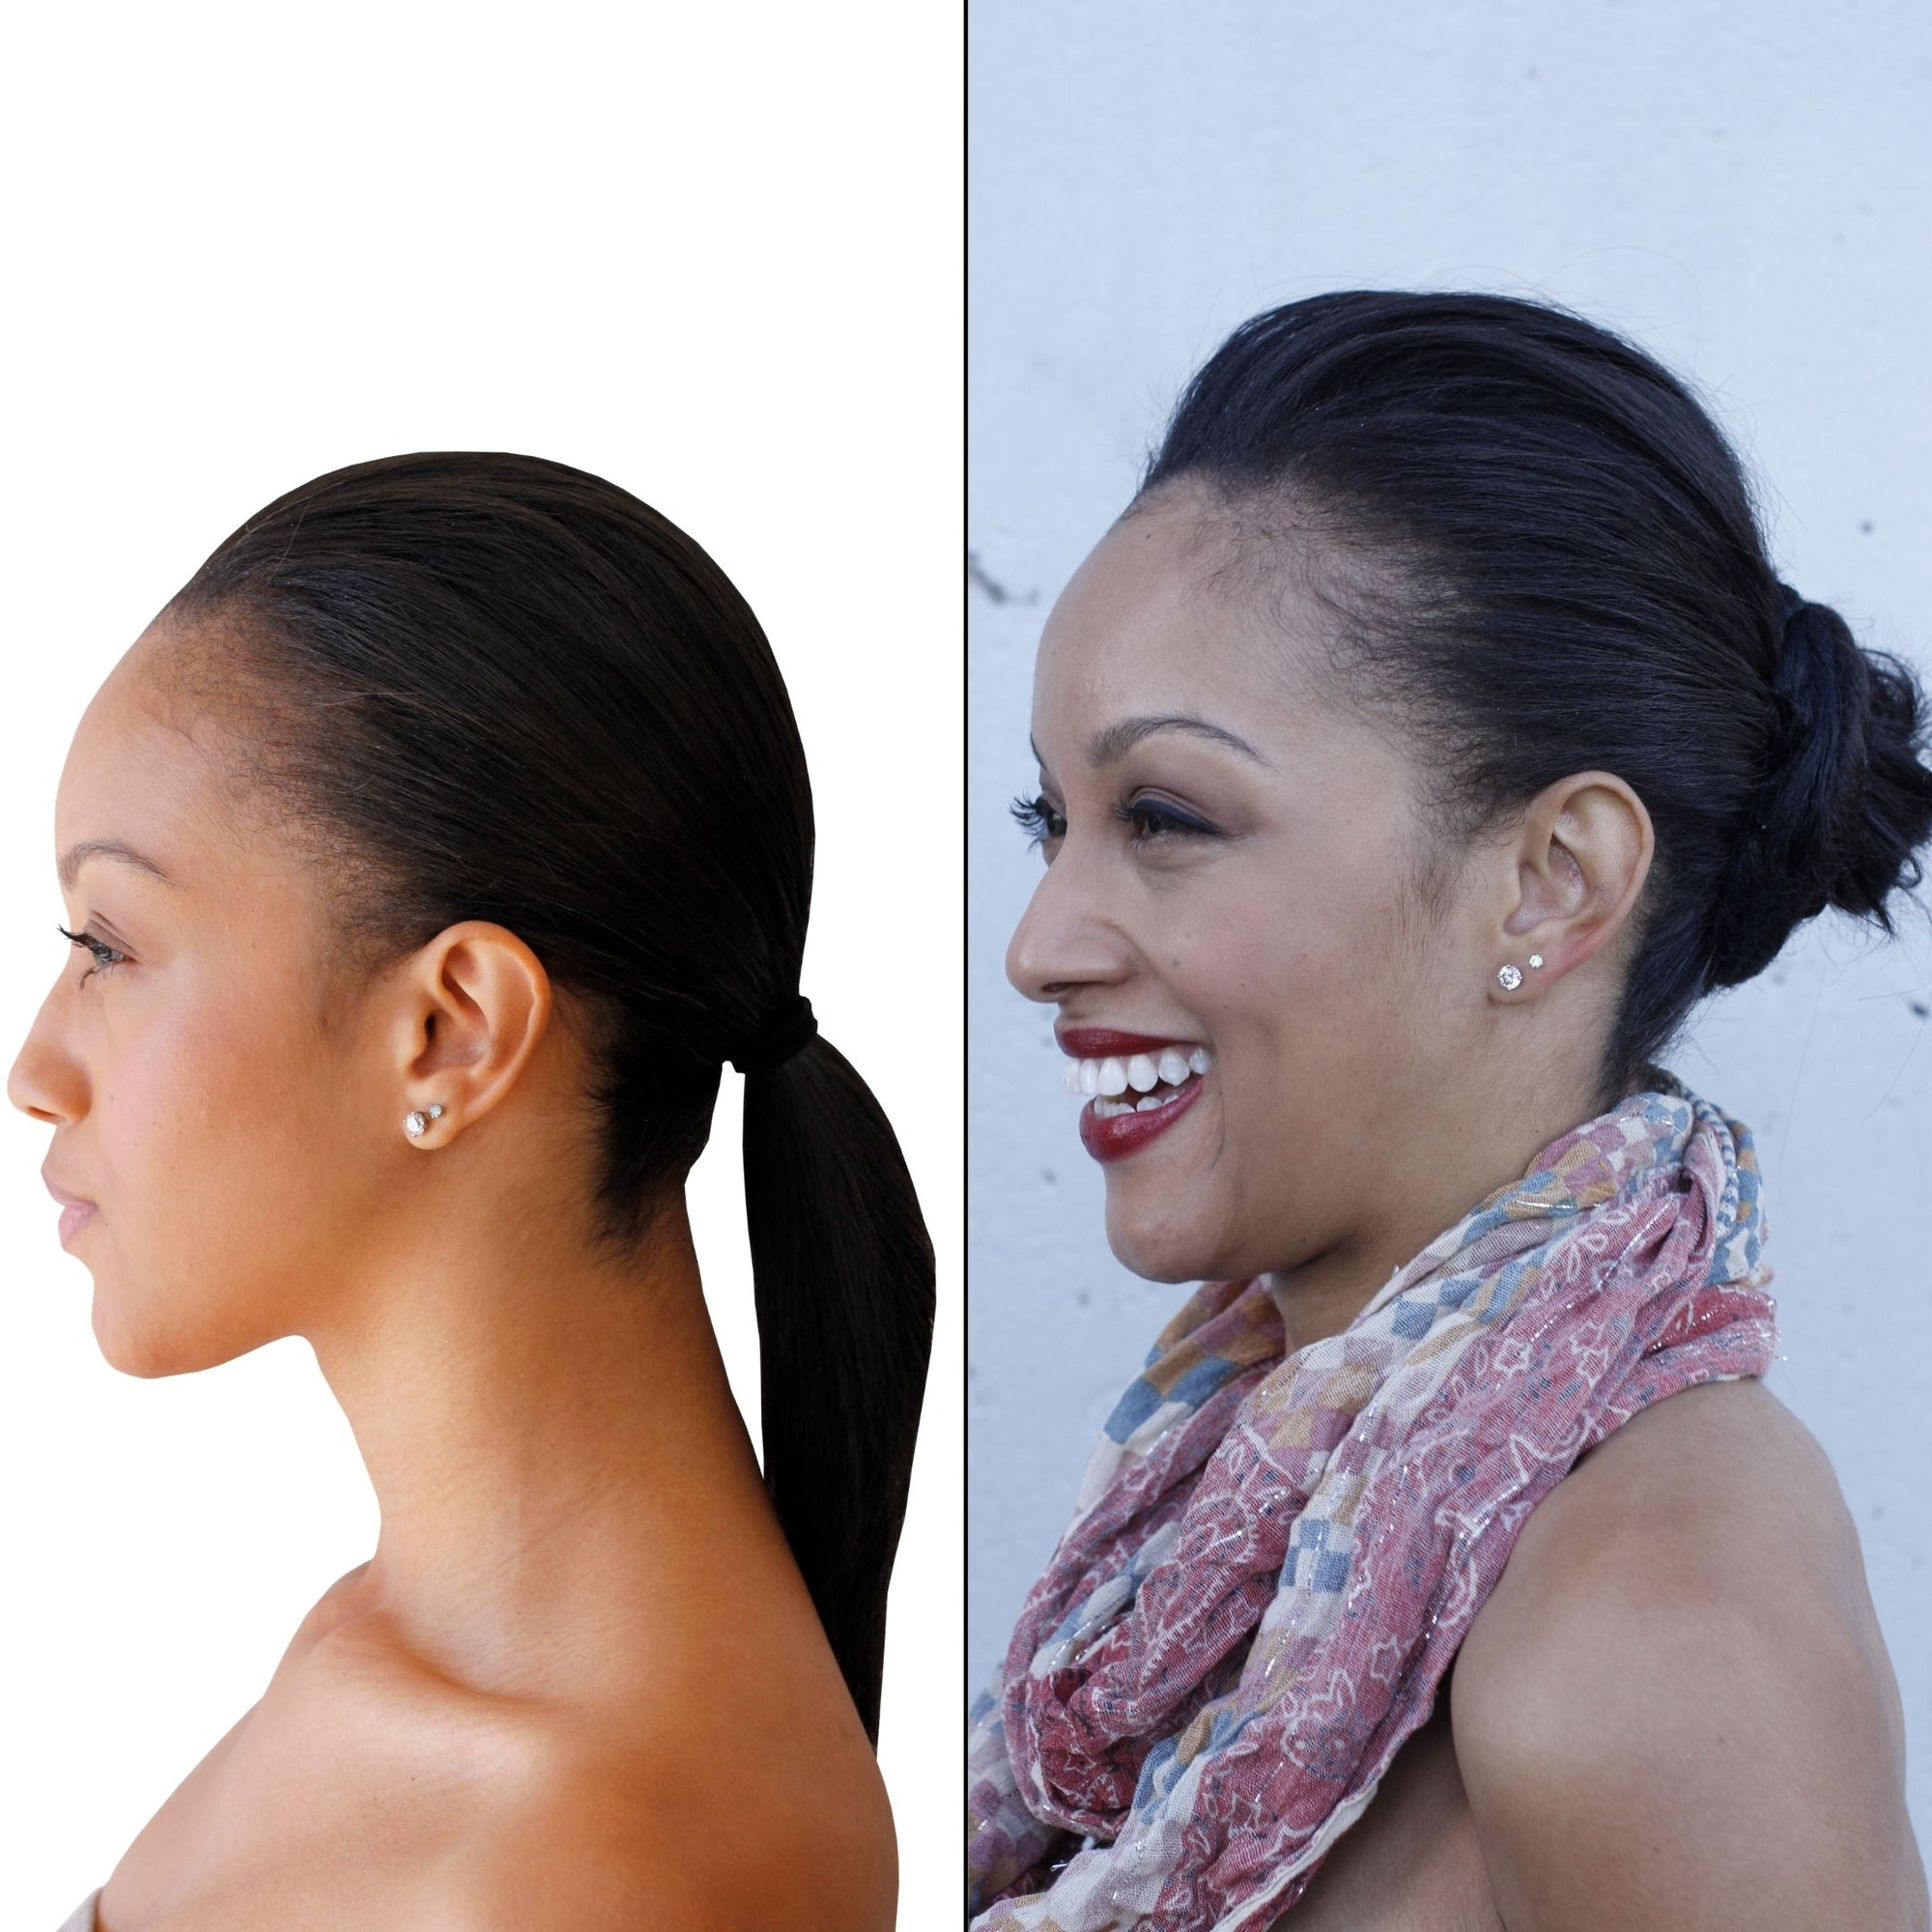 Easy Updo extensions black before after transformation photo of woman in scarf